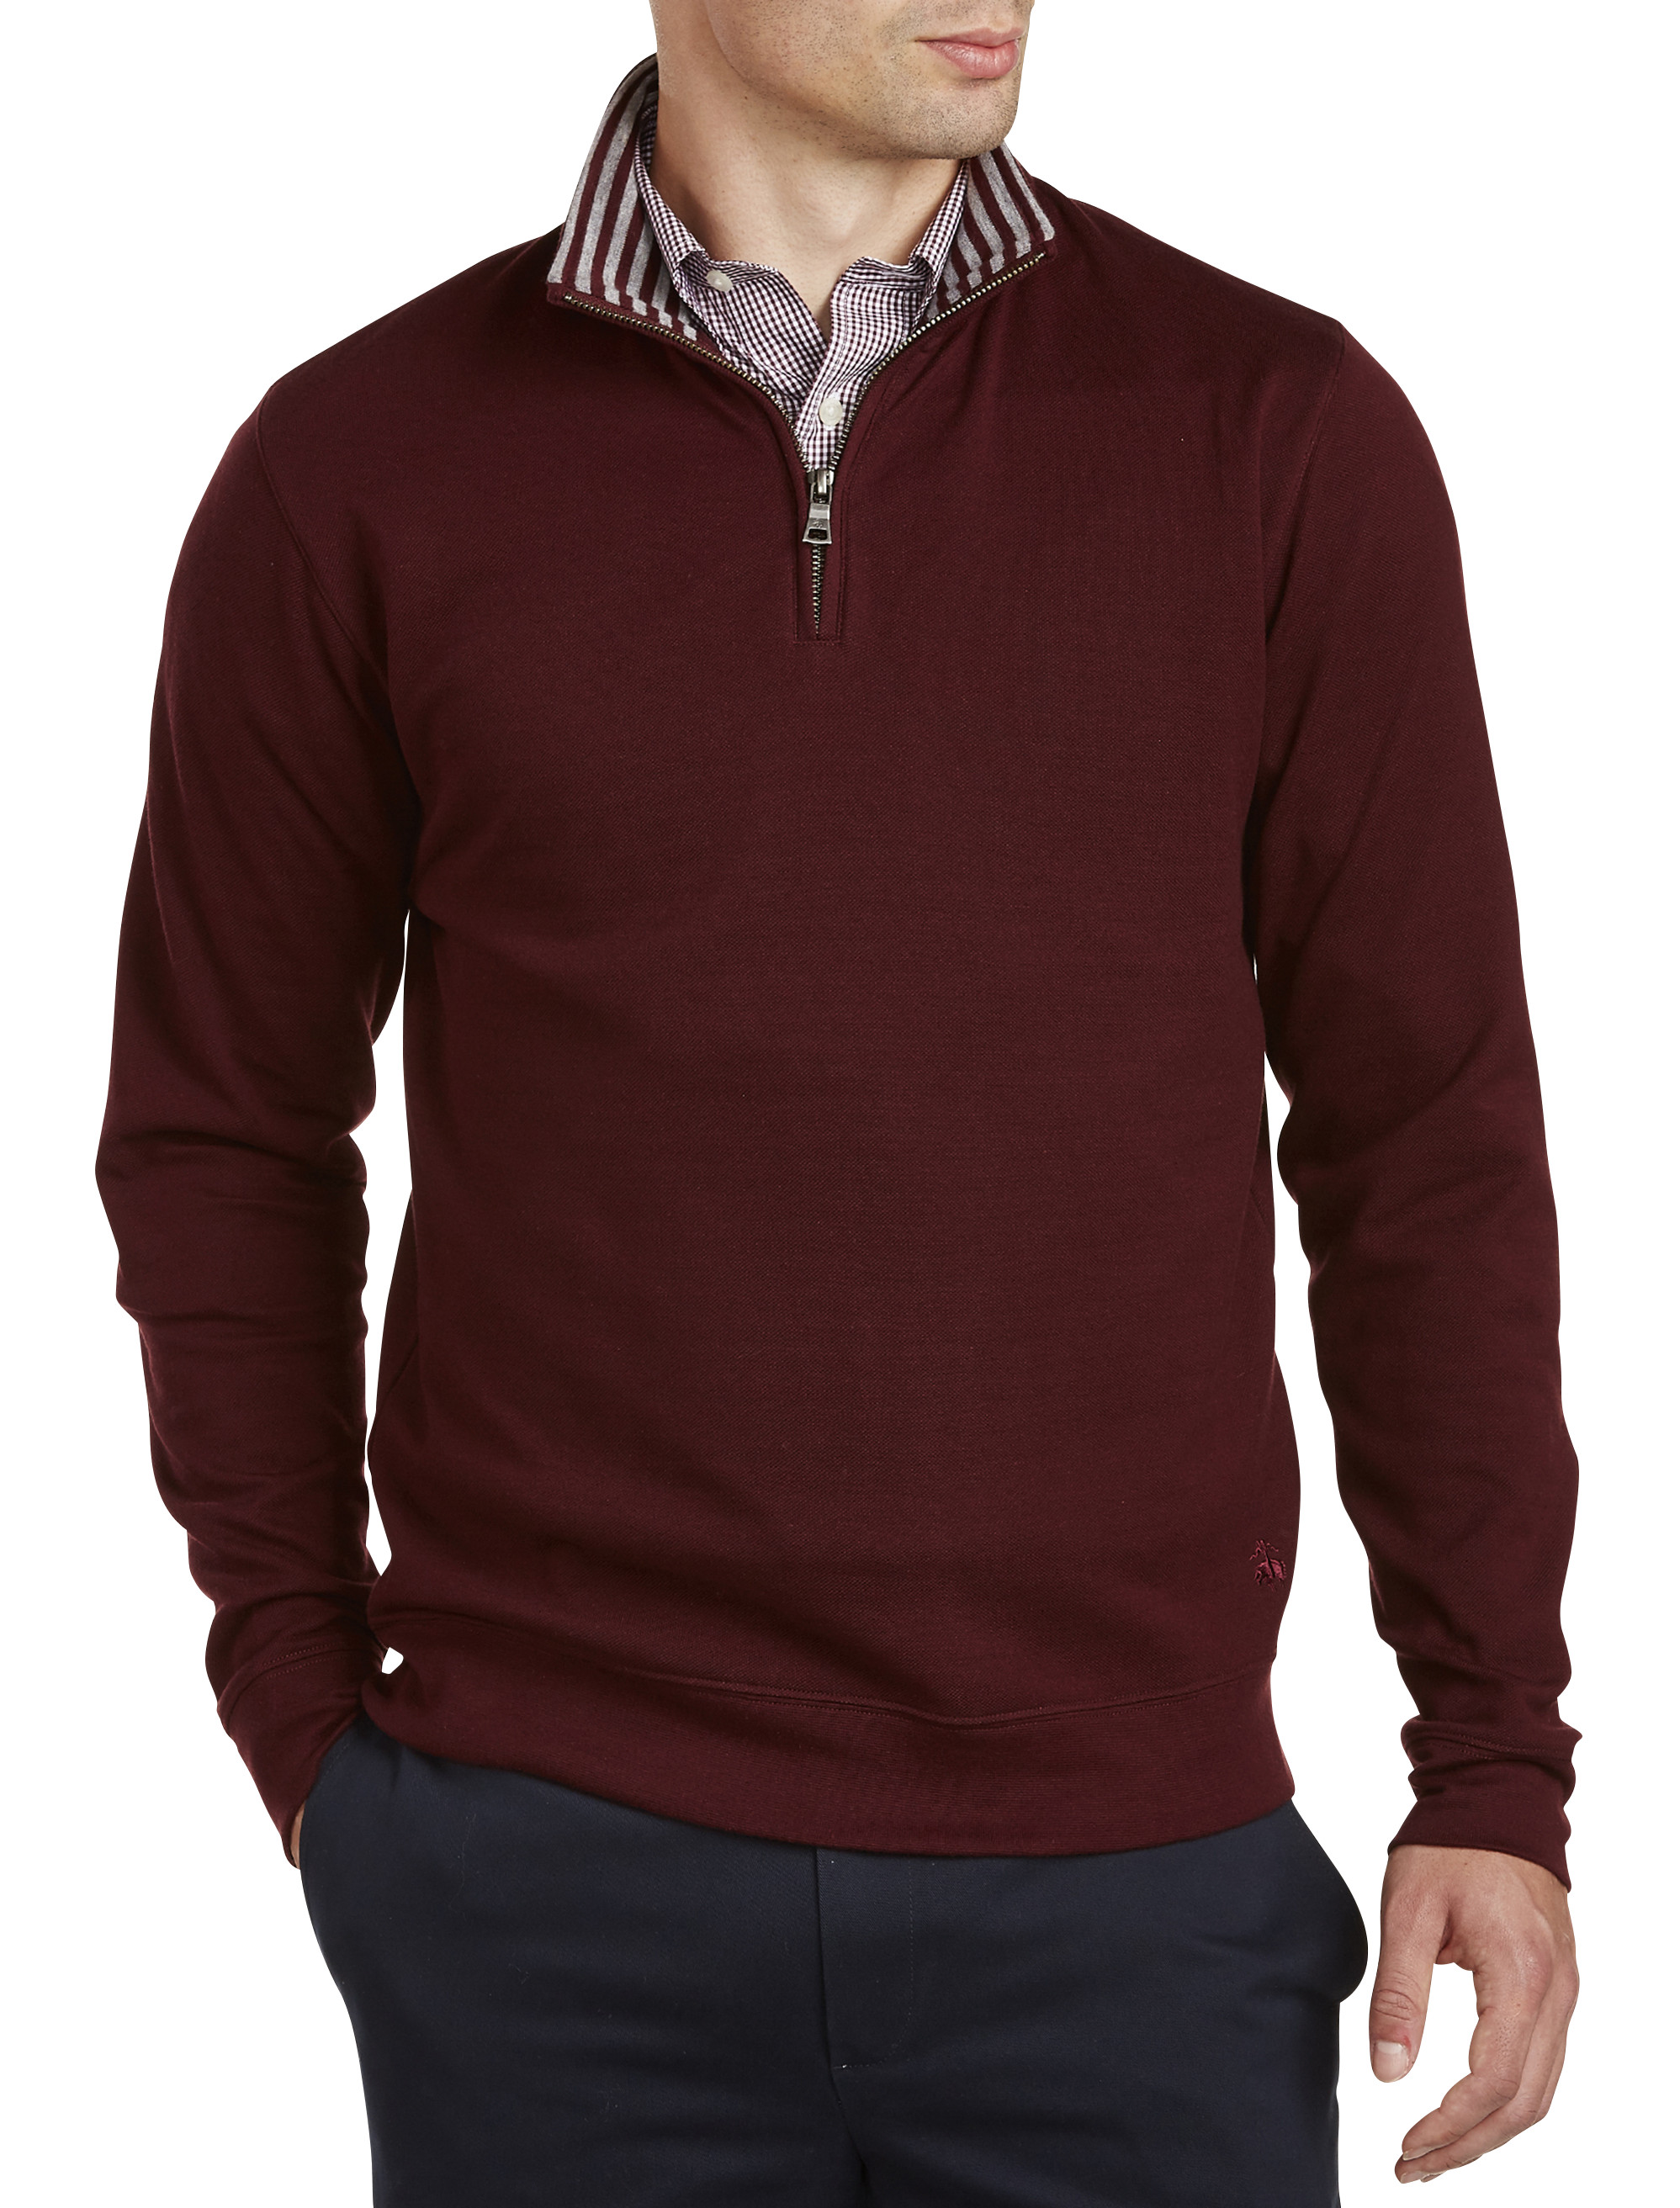 FLEECE EMBROIDERED BUTTON-DOWN SHIRT - Brooks Brothers